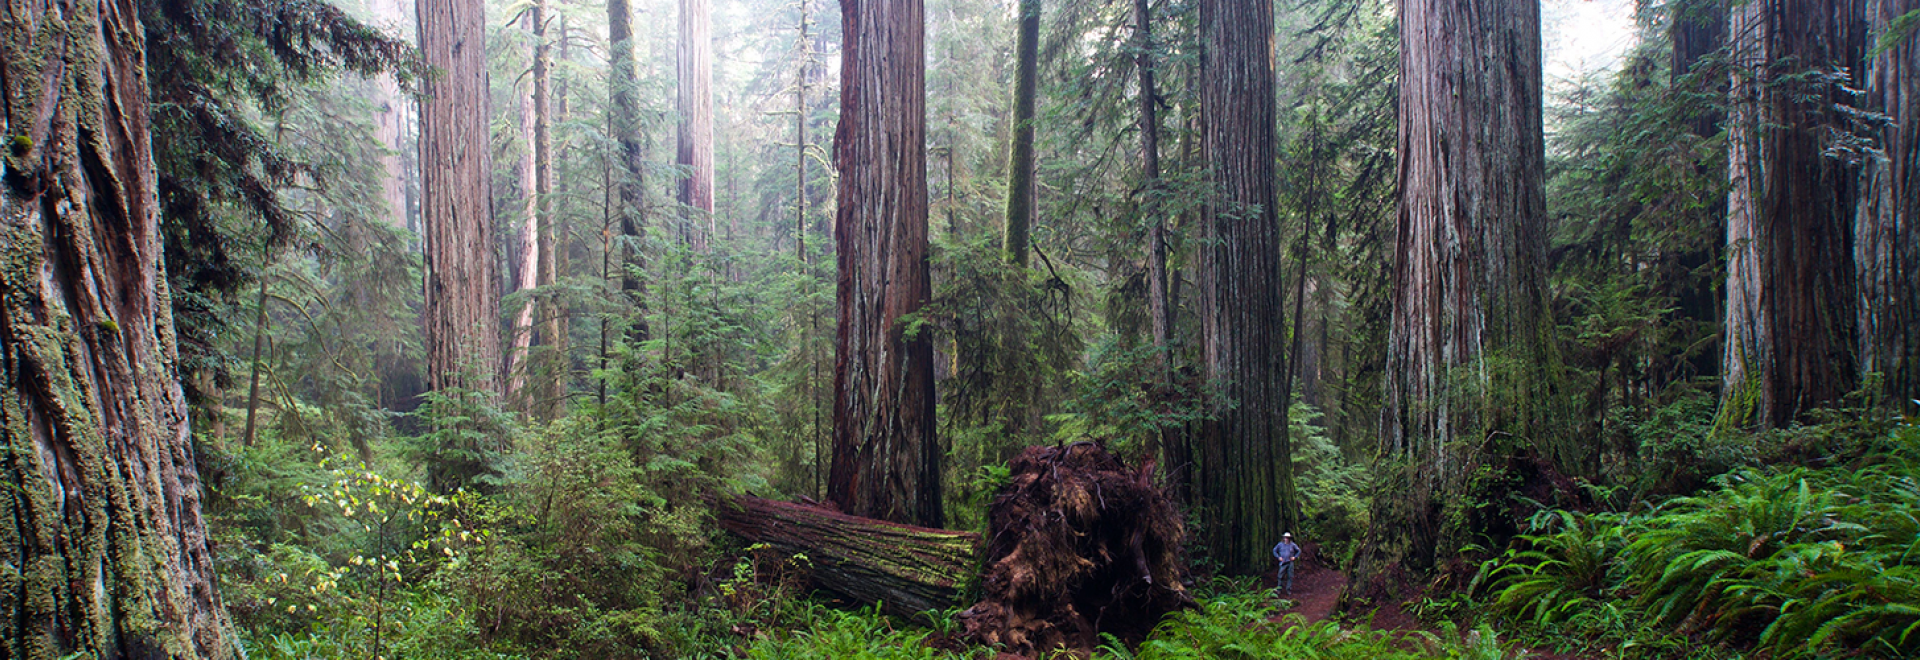 Redwoods and hiker in Jedediah Smith Redwoods State Park